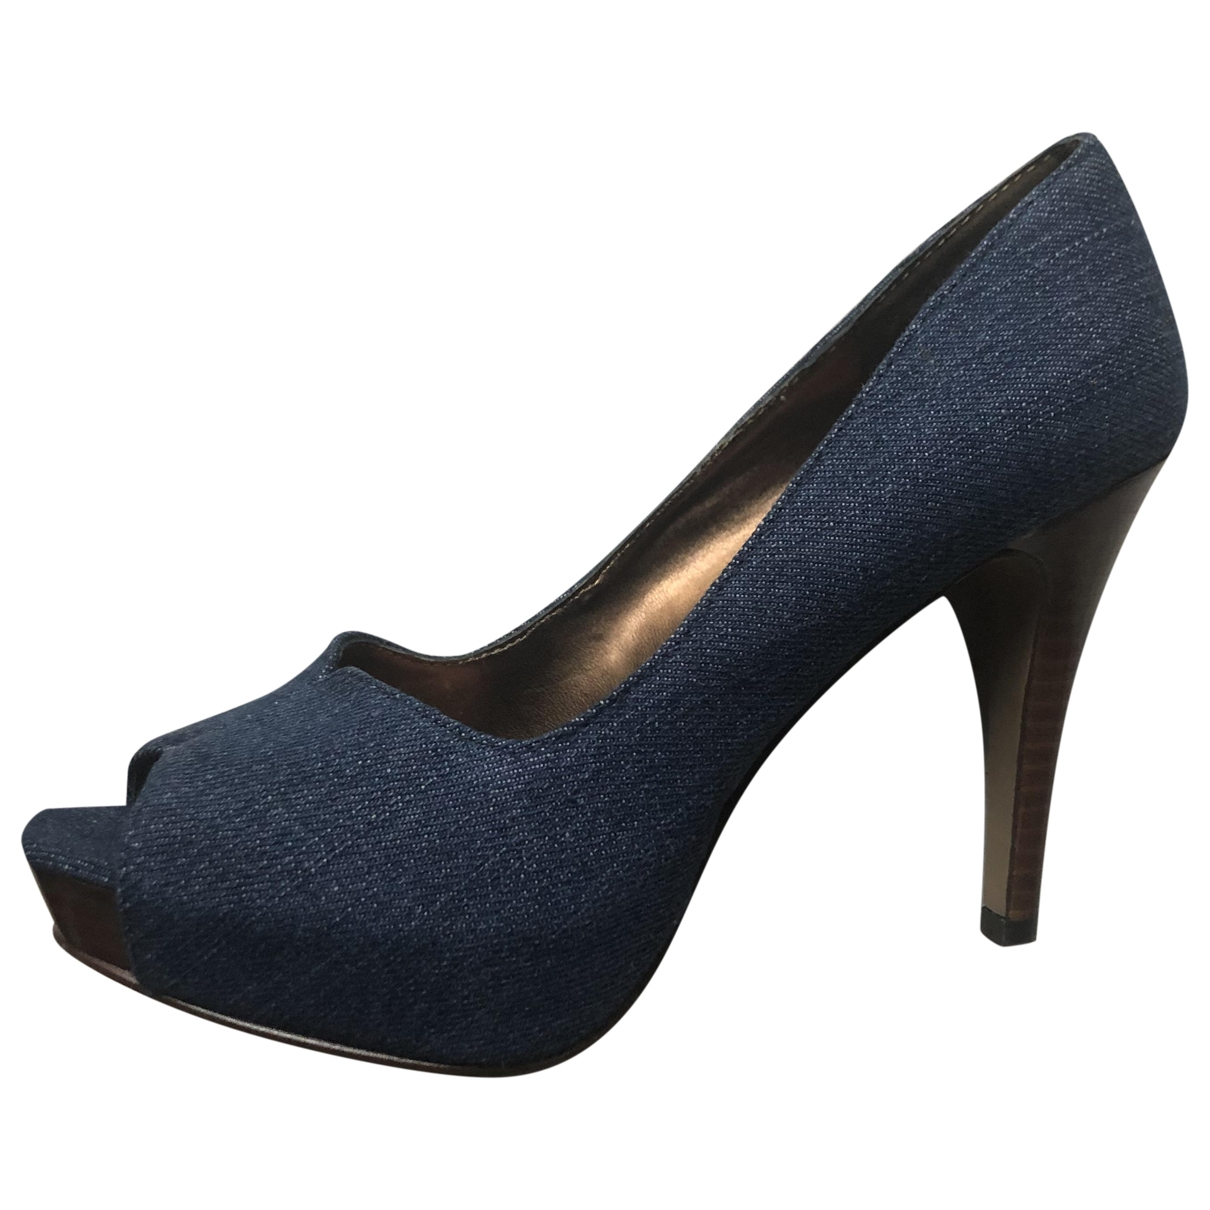 Nine West \N Pumps in  Blau Leinen